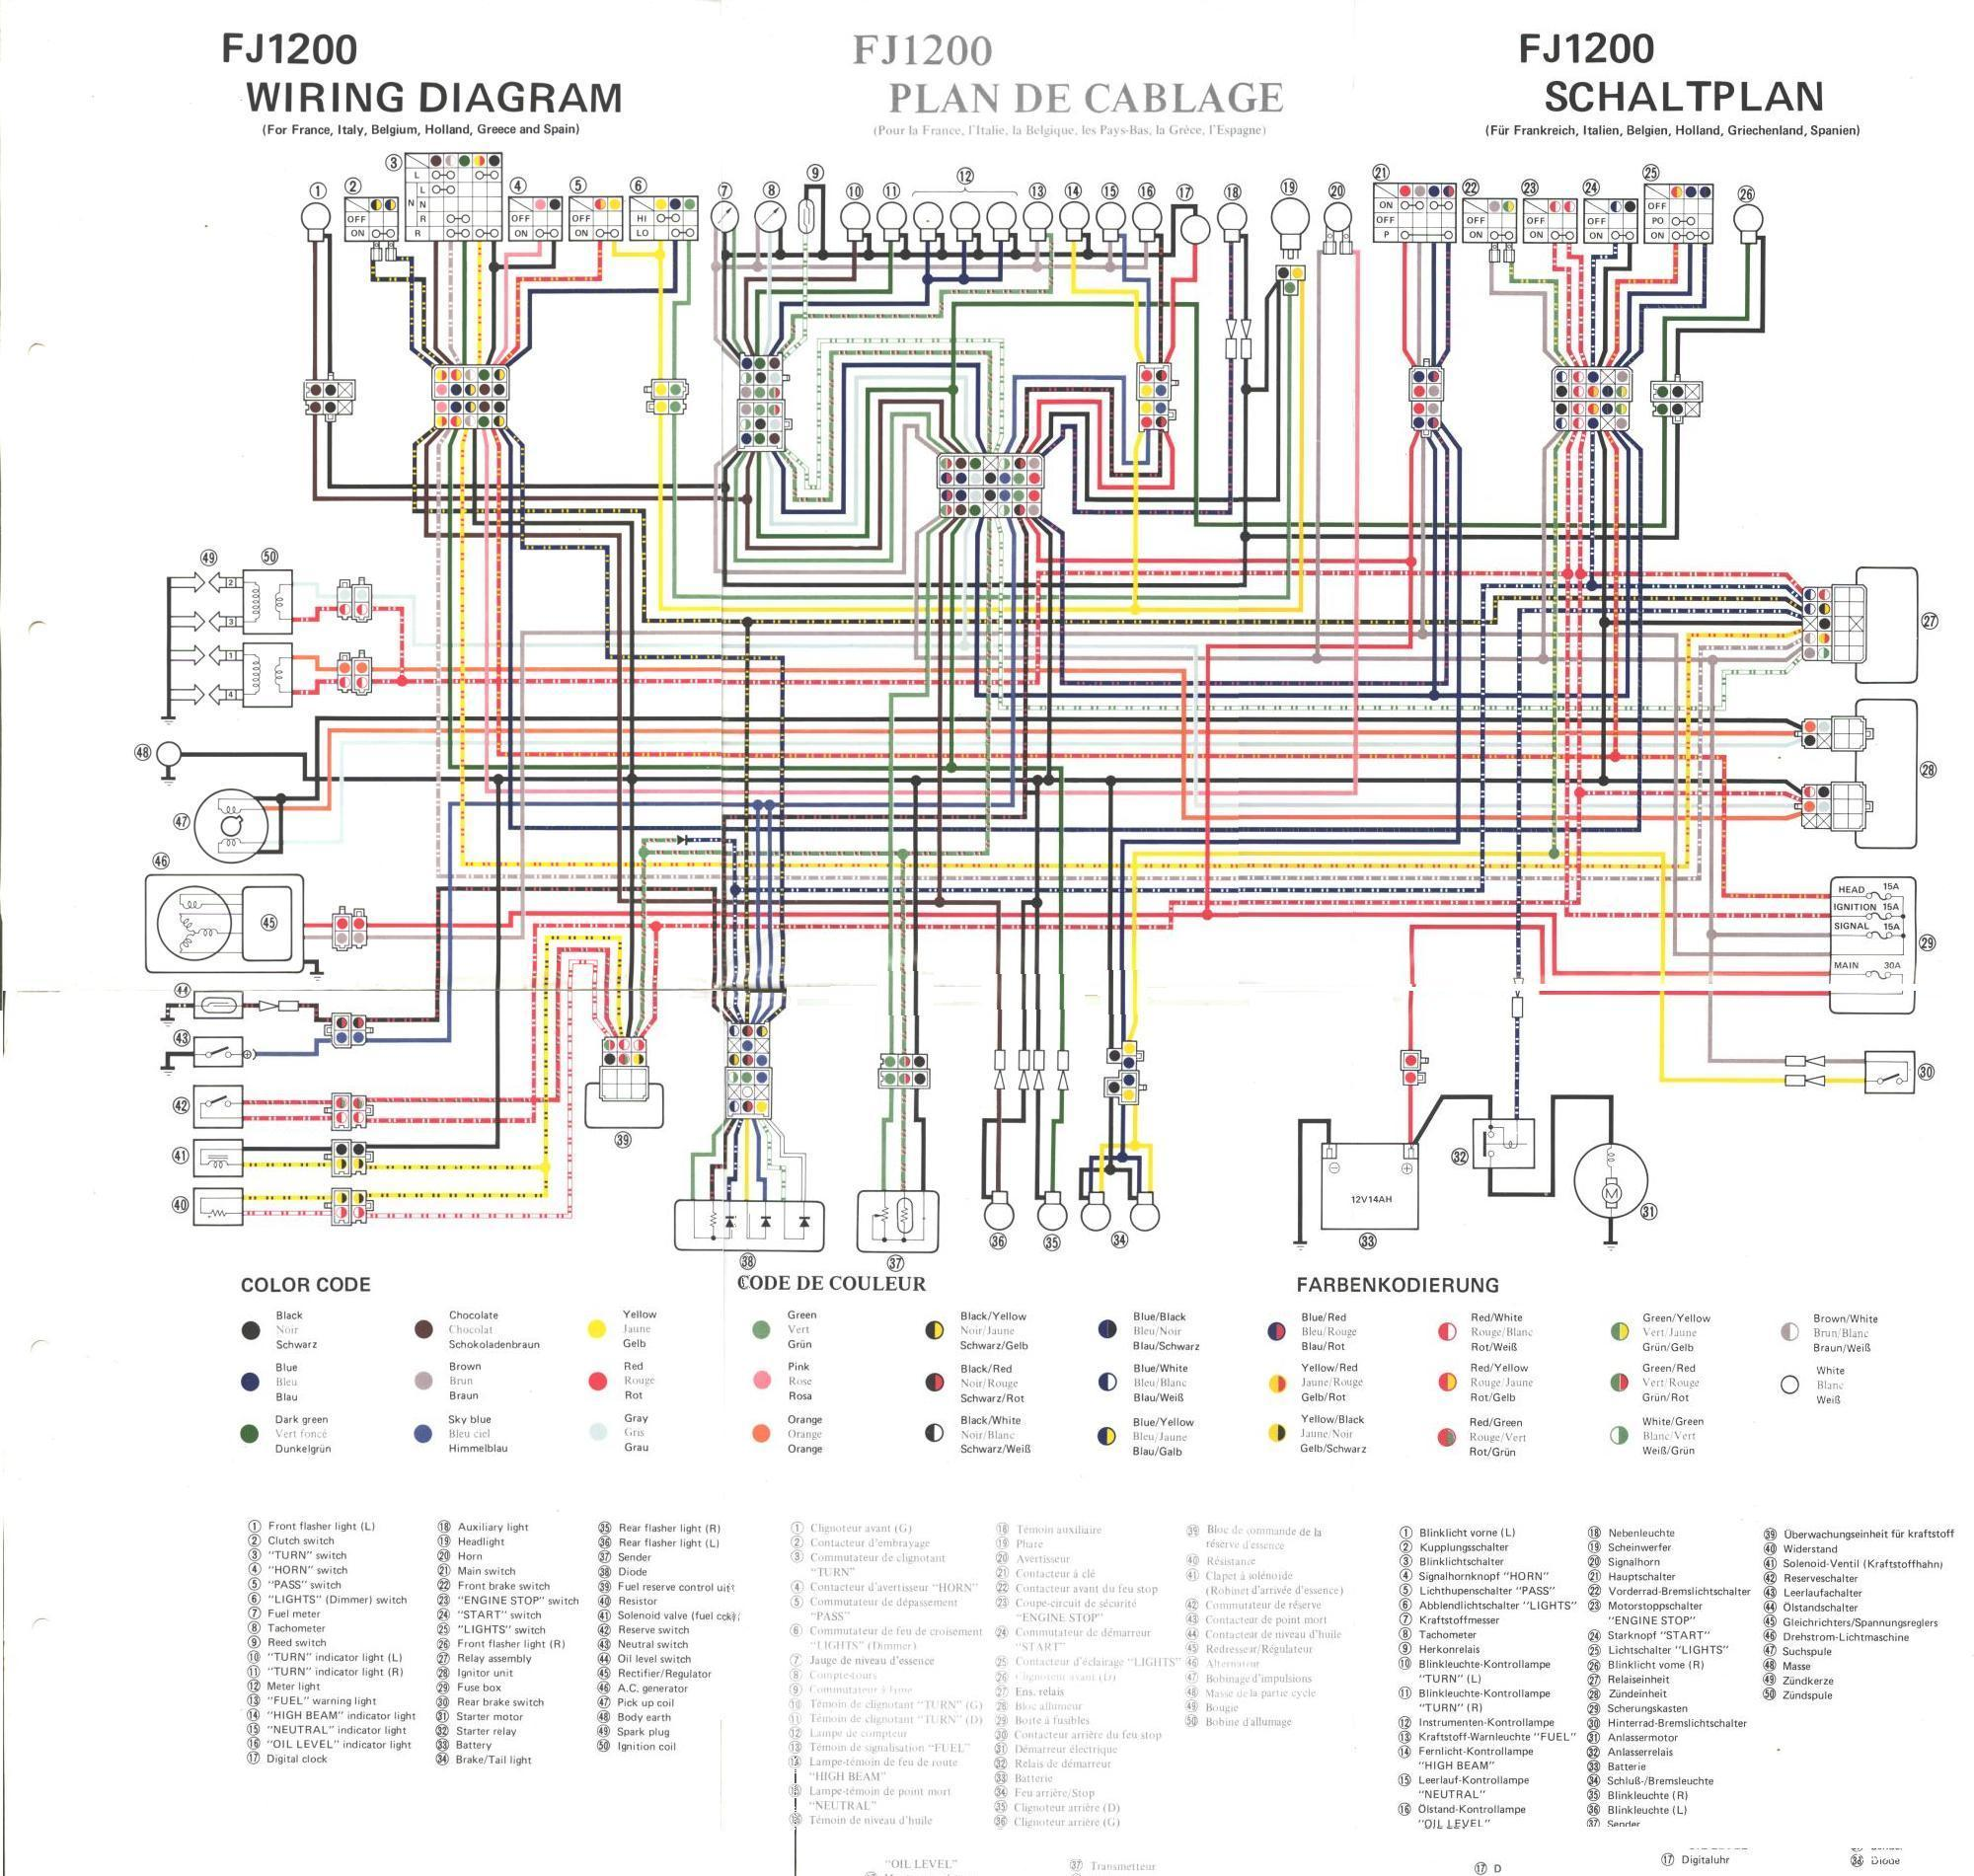 fj1200 wiring diagram dual battery solenoid isolator fj1100 xs360